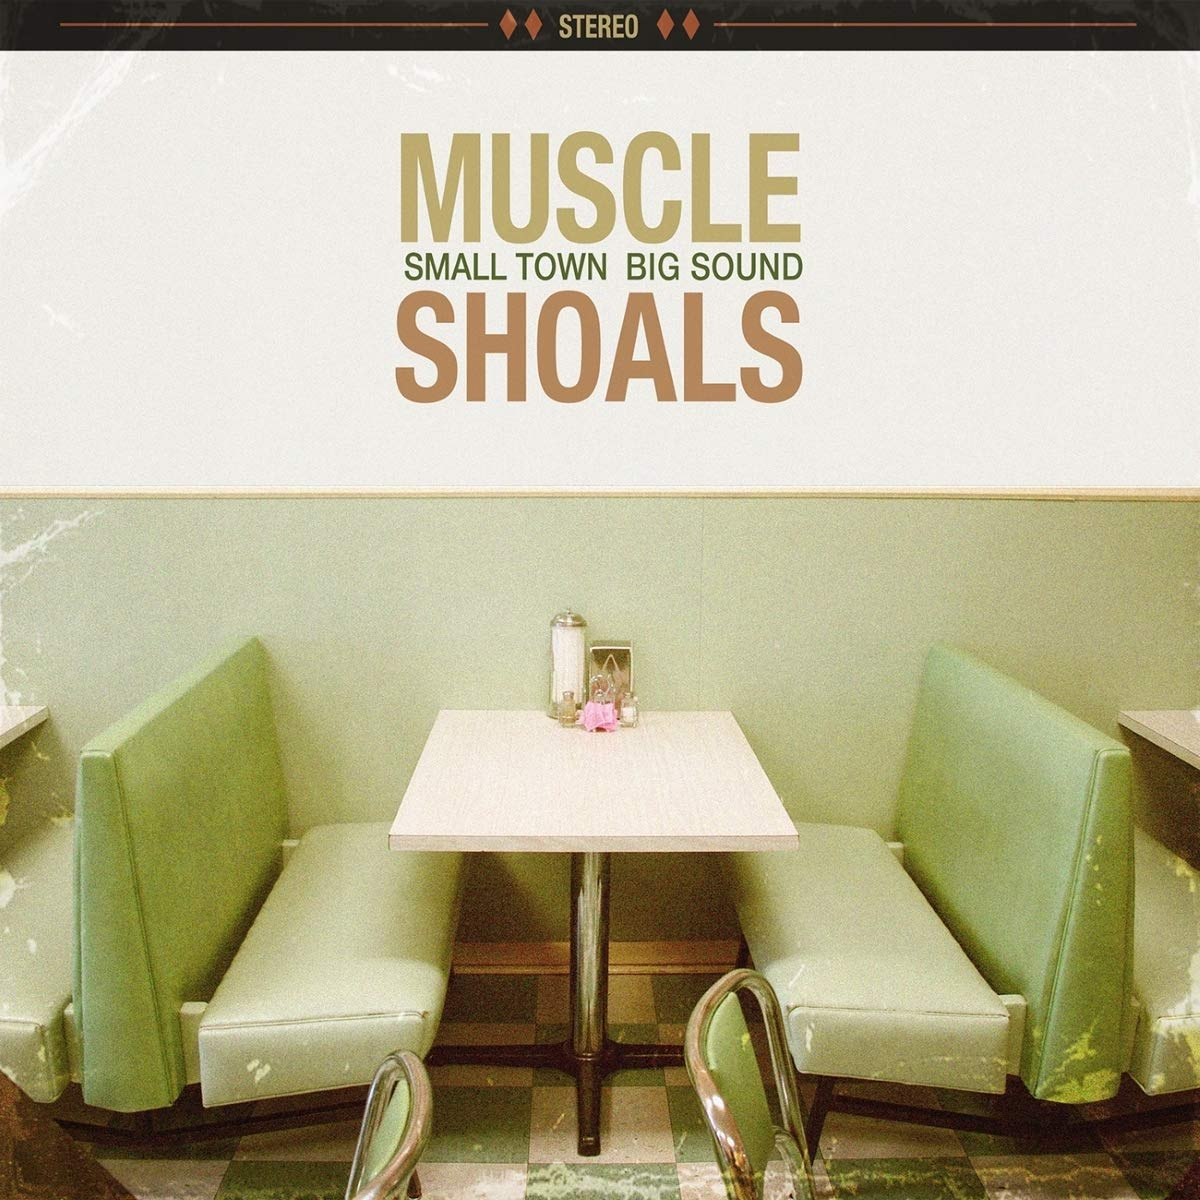 catalog 03 19 Muscle Shoals